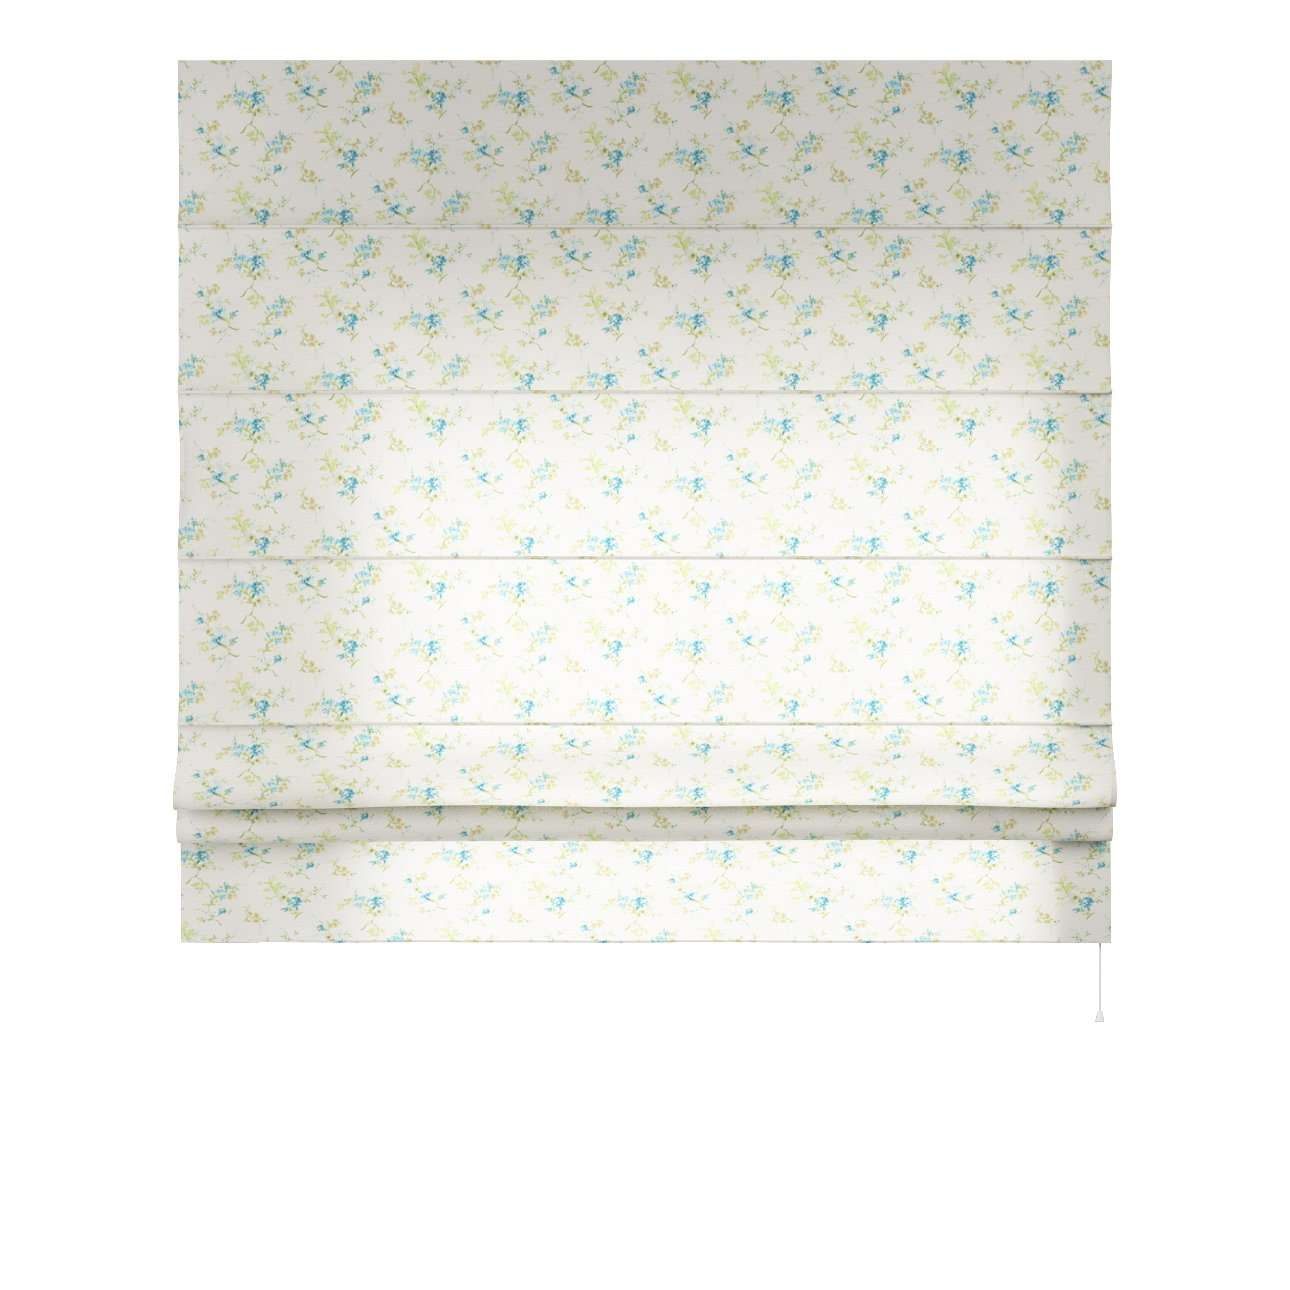 Padva roman blind  80 x 170 cm (31.5 x 67 inch) in collection Mirella, fabric: 141-16